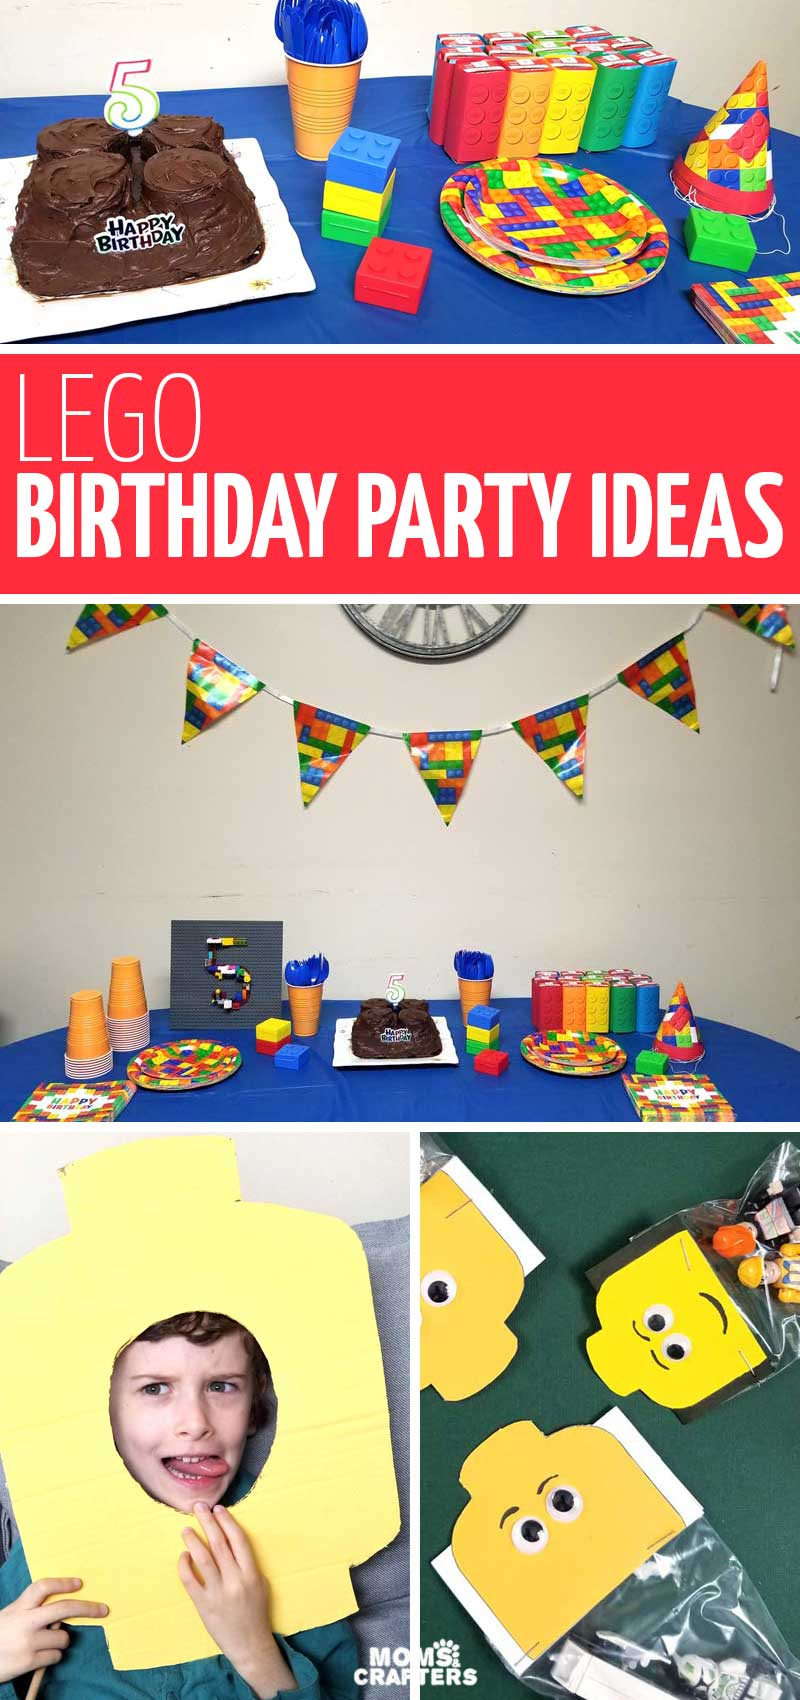 This list of LEGO birthday party ideas includes so many crafts and activities for a brick party! These ideas for a five year old birthday party theme include photo props, craft ideas, party activities, food ideas to serve, decorations, and more